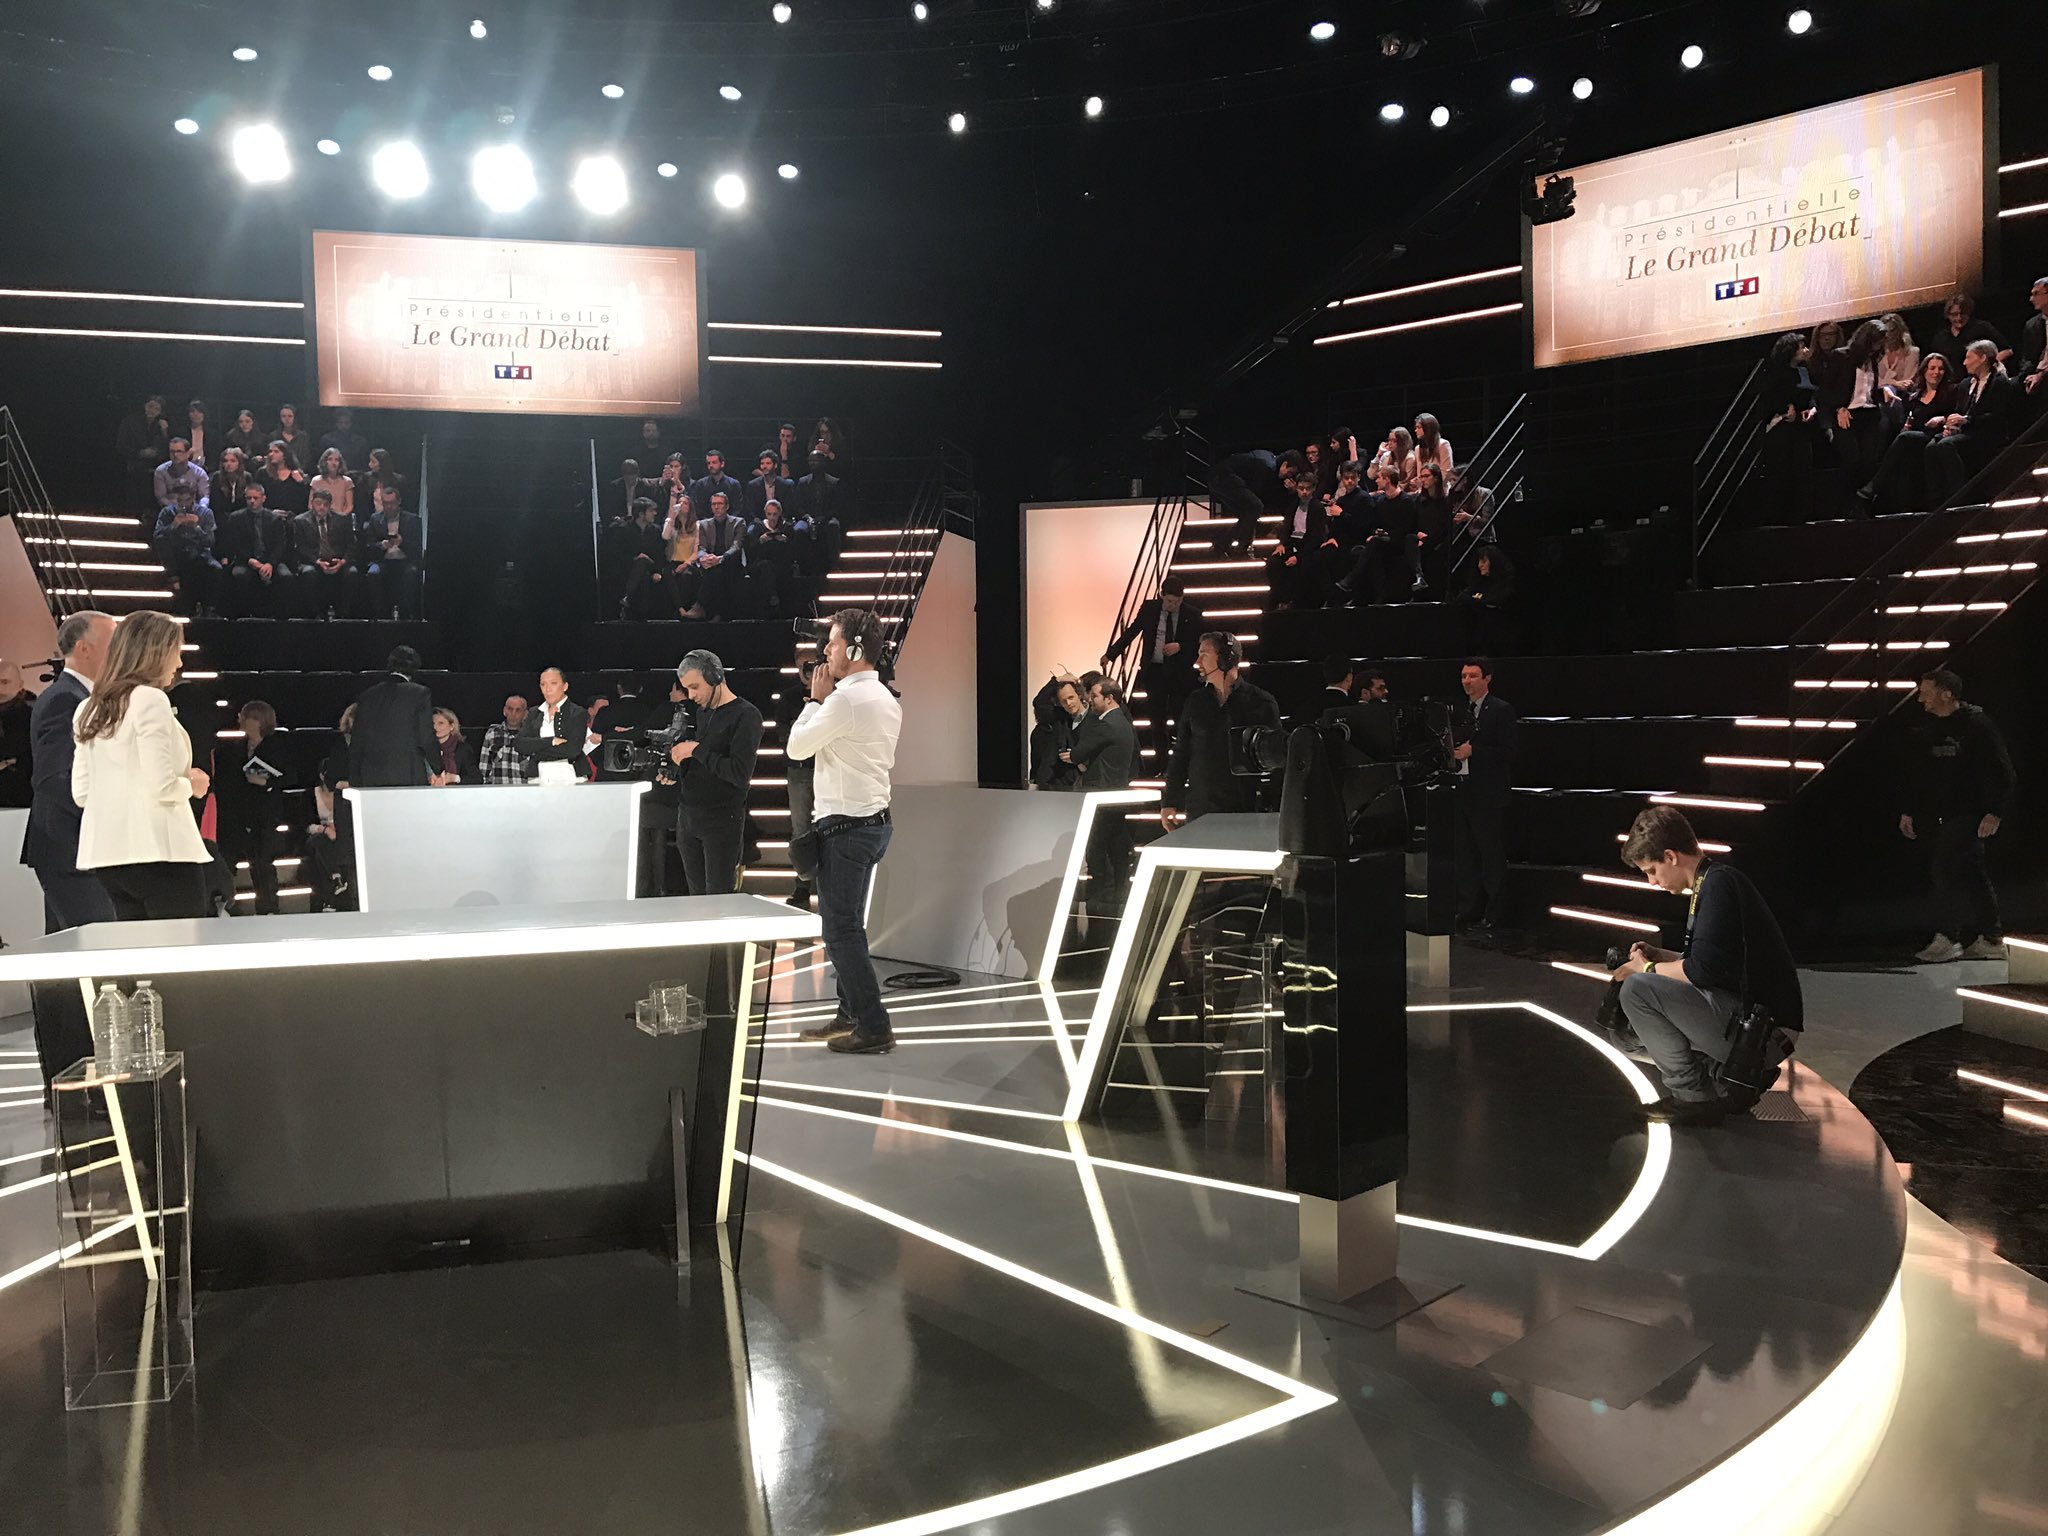 Sur le plateau de #DebatTF1 on attend avec impatience Marine ��#Marine2017 #AuNomDuPeuple https://t.co/w0LsHlesFd